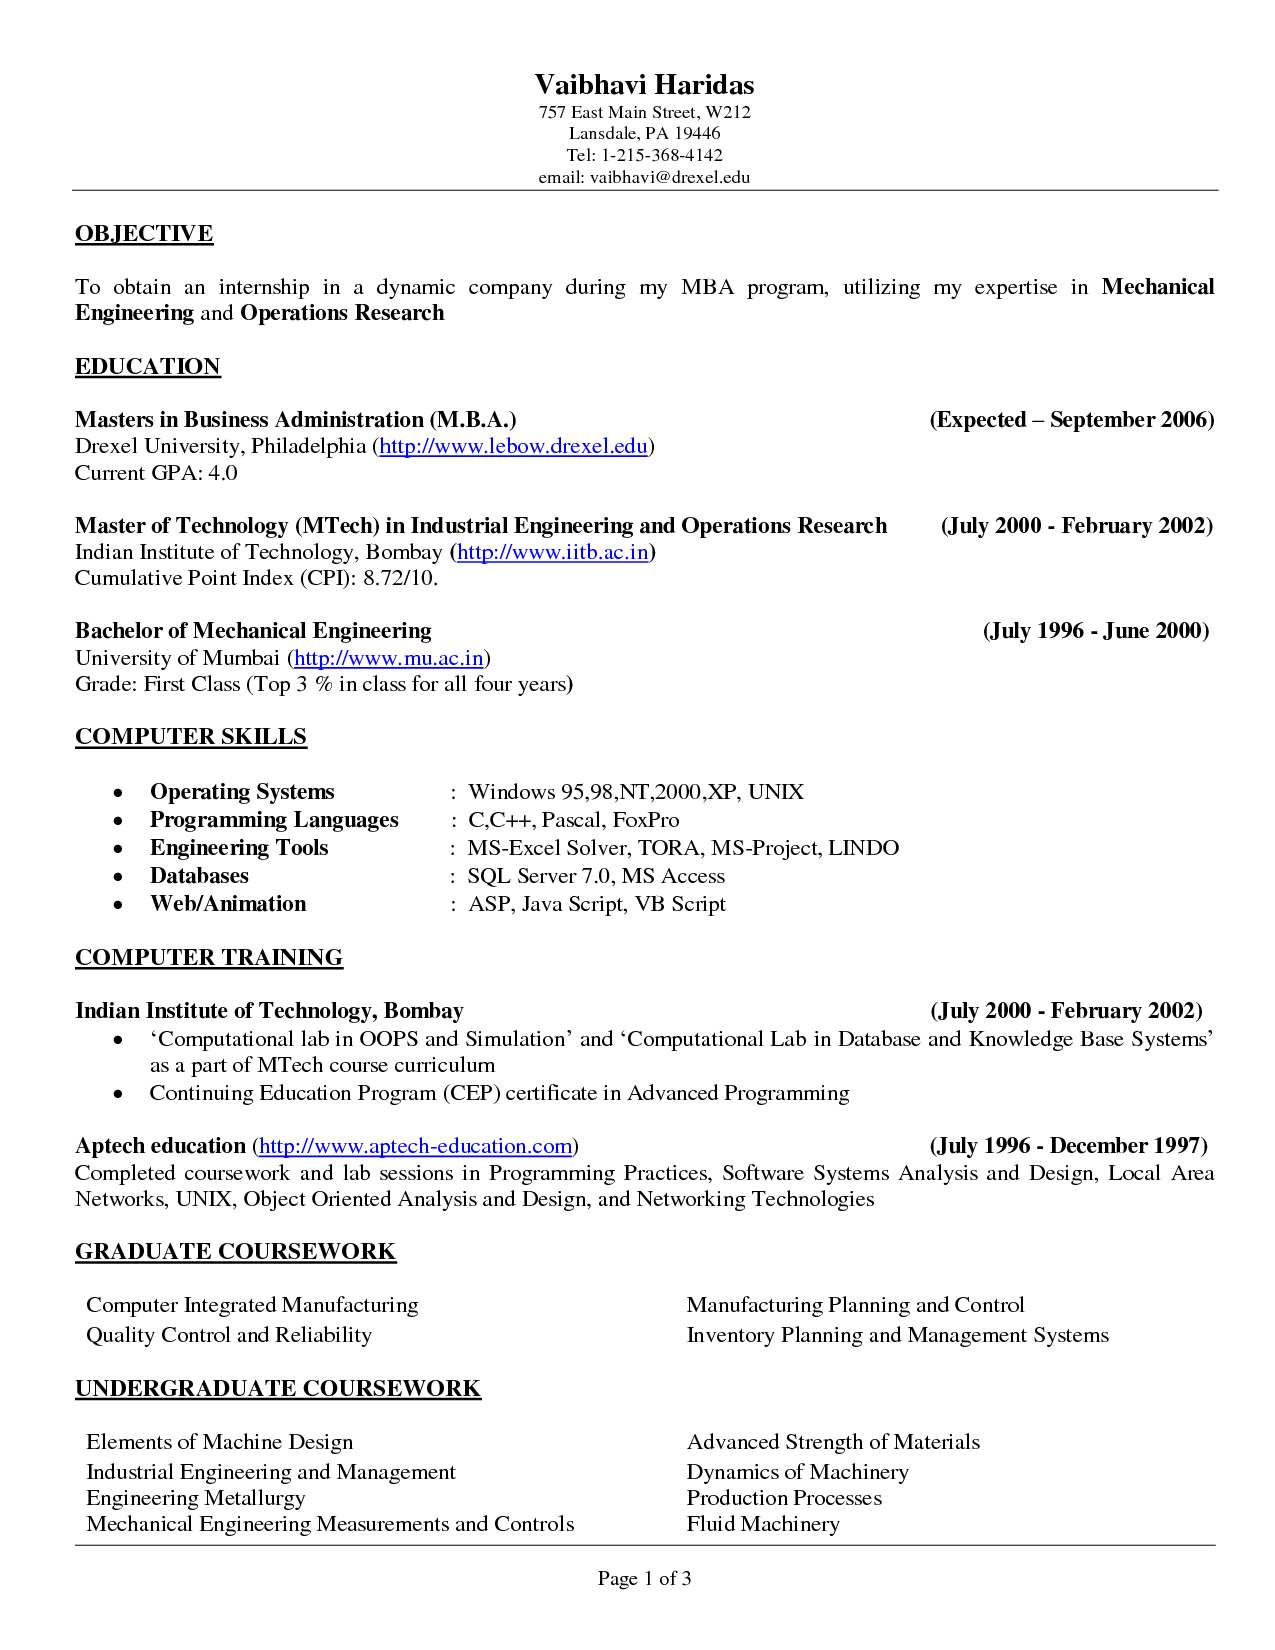 Objectives In Resumes Resume Objective Example Best Templateresume Objective Examples